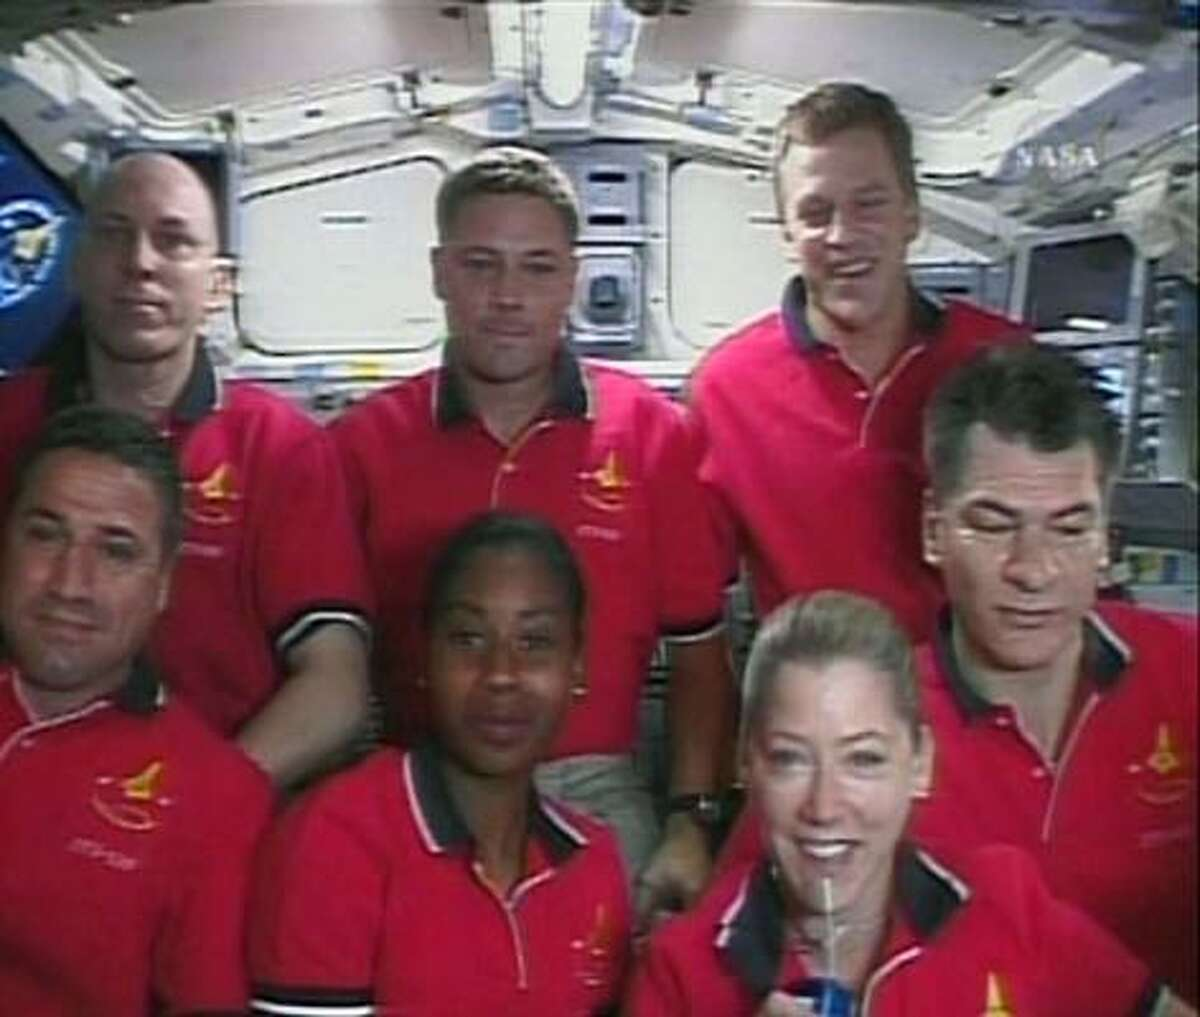 In this image from NASA TV, shuttle Discovery commander Pamela Melroy, lower right, answers a question during a news conference from space, Tuesday. Astronauts, front row from left, are George Zamka, pilot; Stephanie Wilson, mission specialist; Melroy and Paolo Nespoli. Back row, from left, are mission specialists Clayton Anderson, Douglas Whelock and Scott Parazynski.